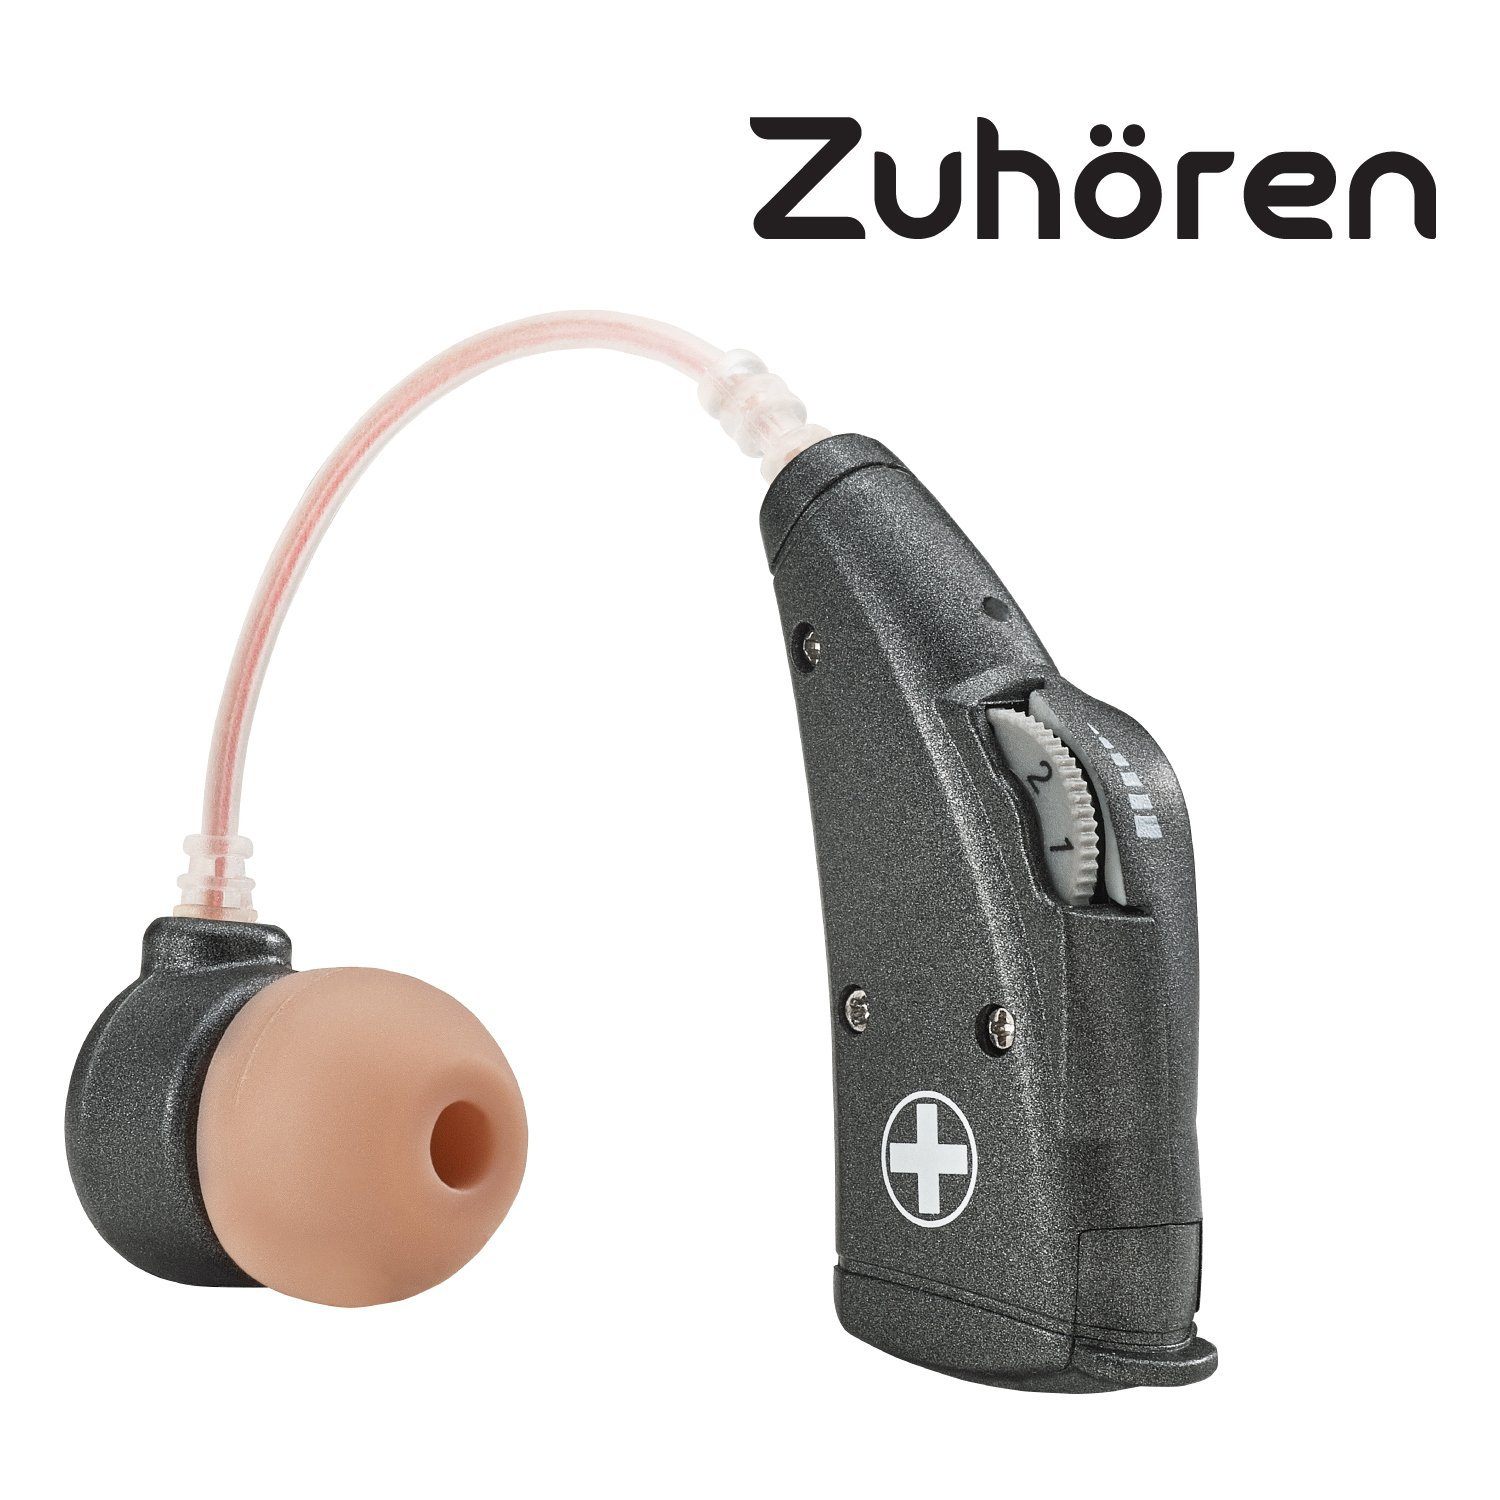 Zuhören Digital Hearing Amplifier with 6 color options. BTE (Behind-The-Ear style) sound enhancer amplifier. Come with 4 sizes of ear buds. The P13 cell battery last up to 95 hours. (Sliver Black)